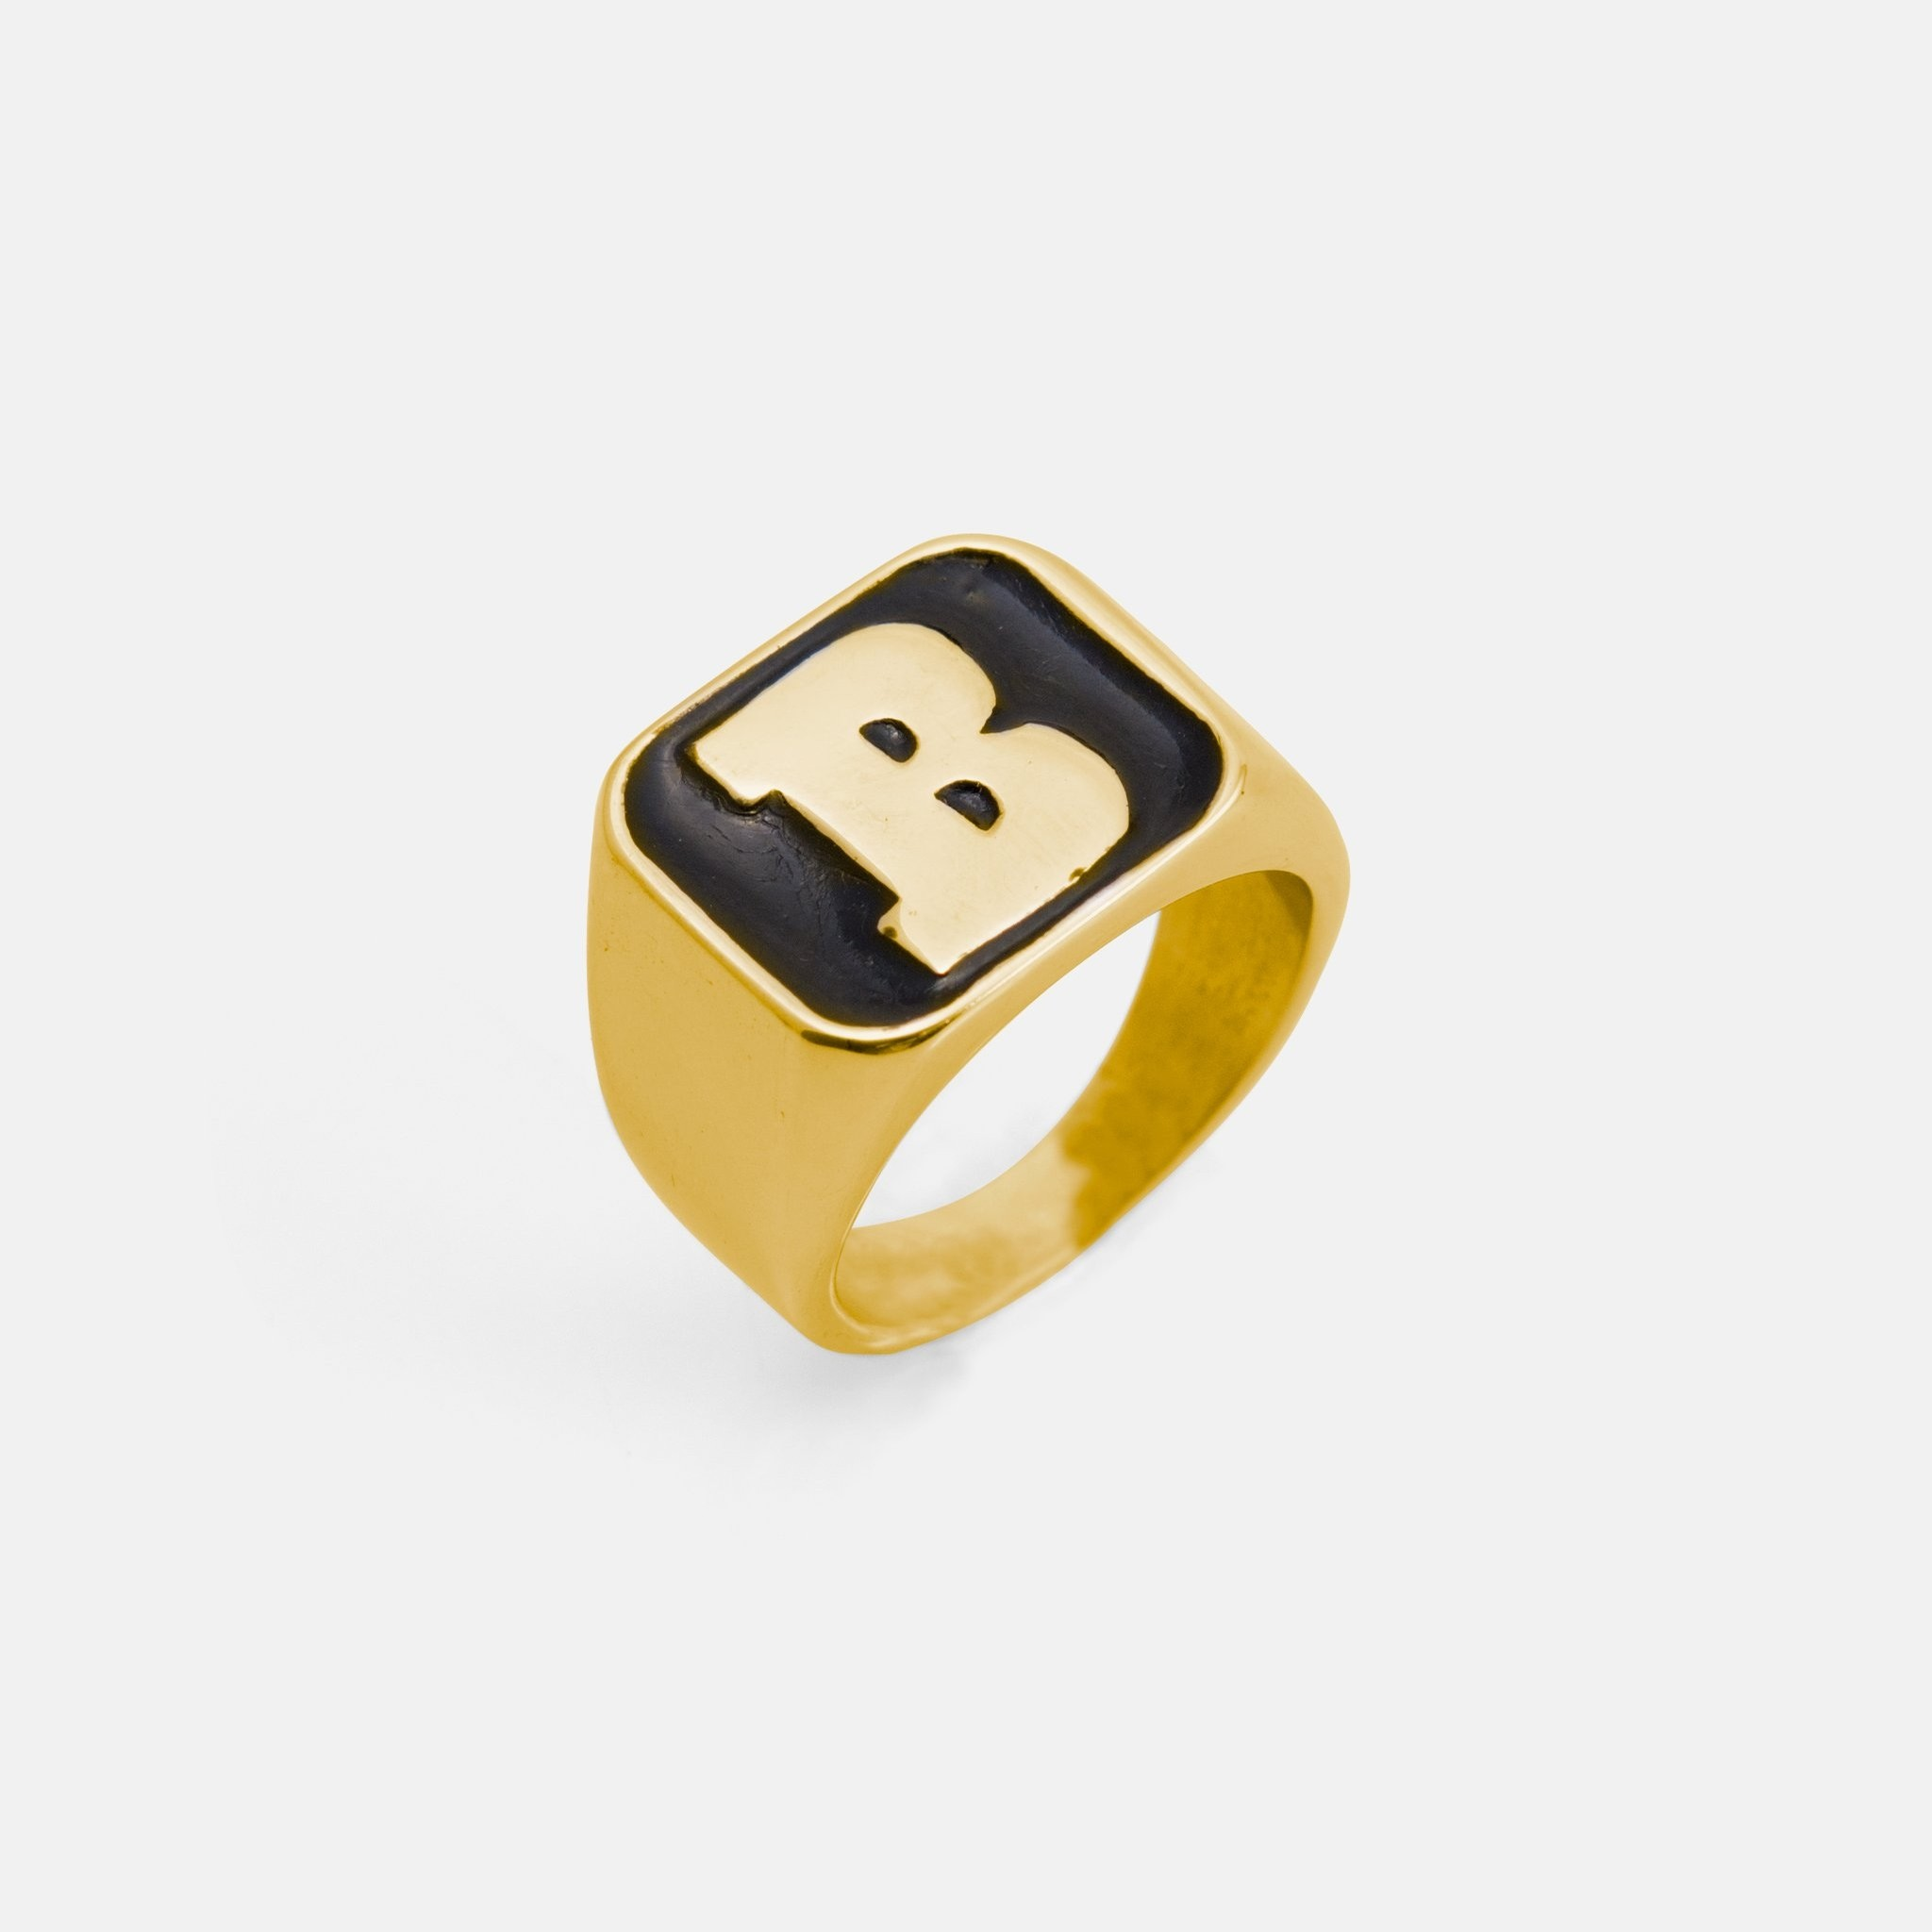 Capital B Gold/Black Ring